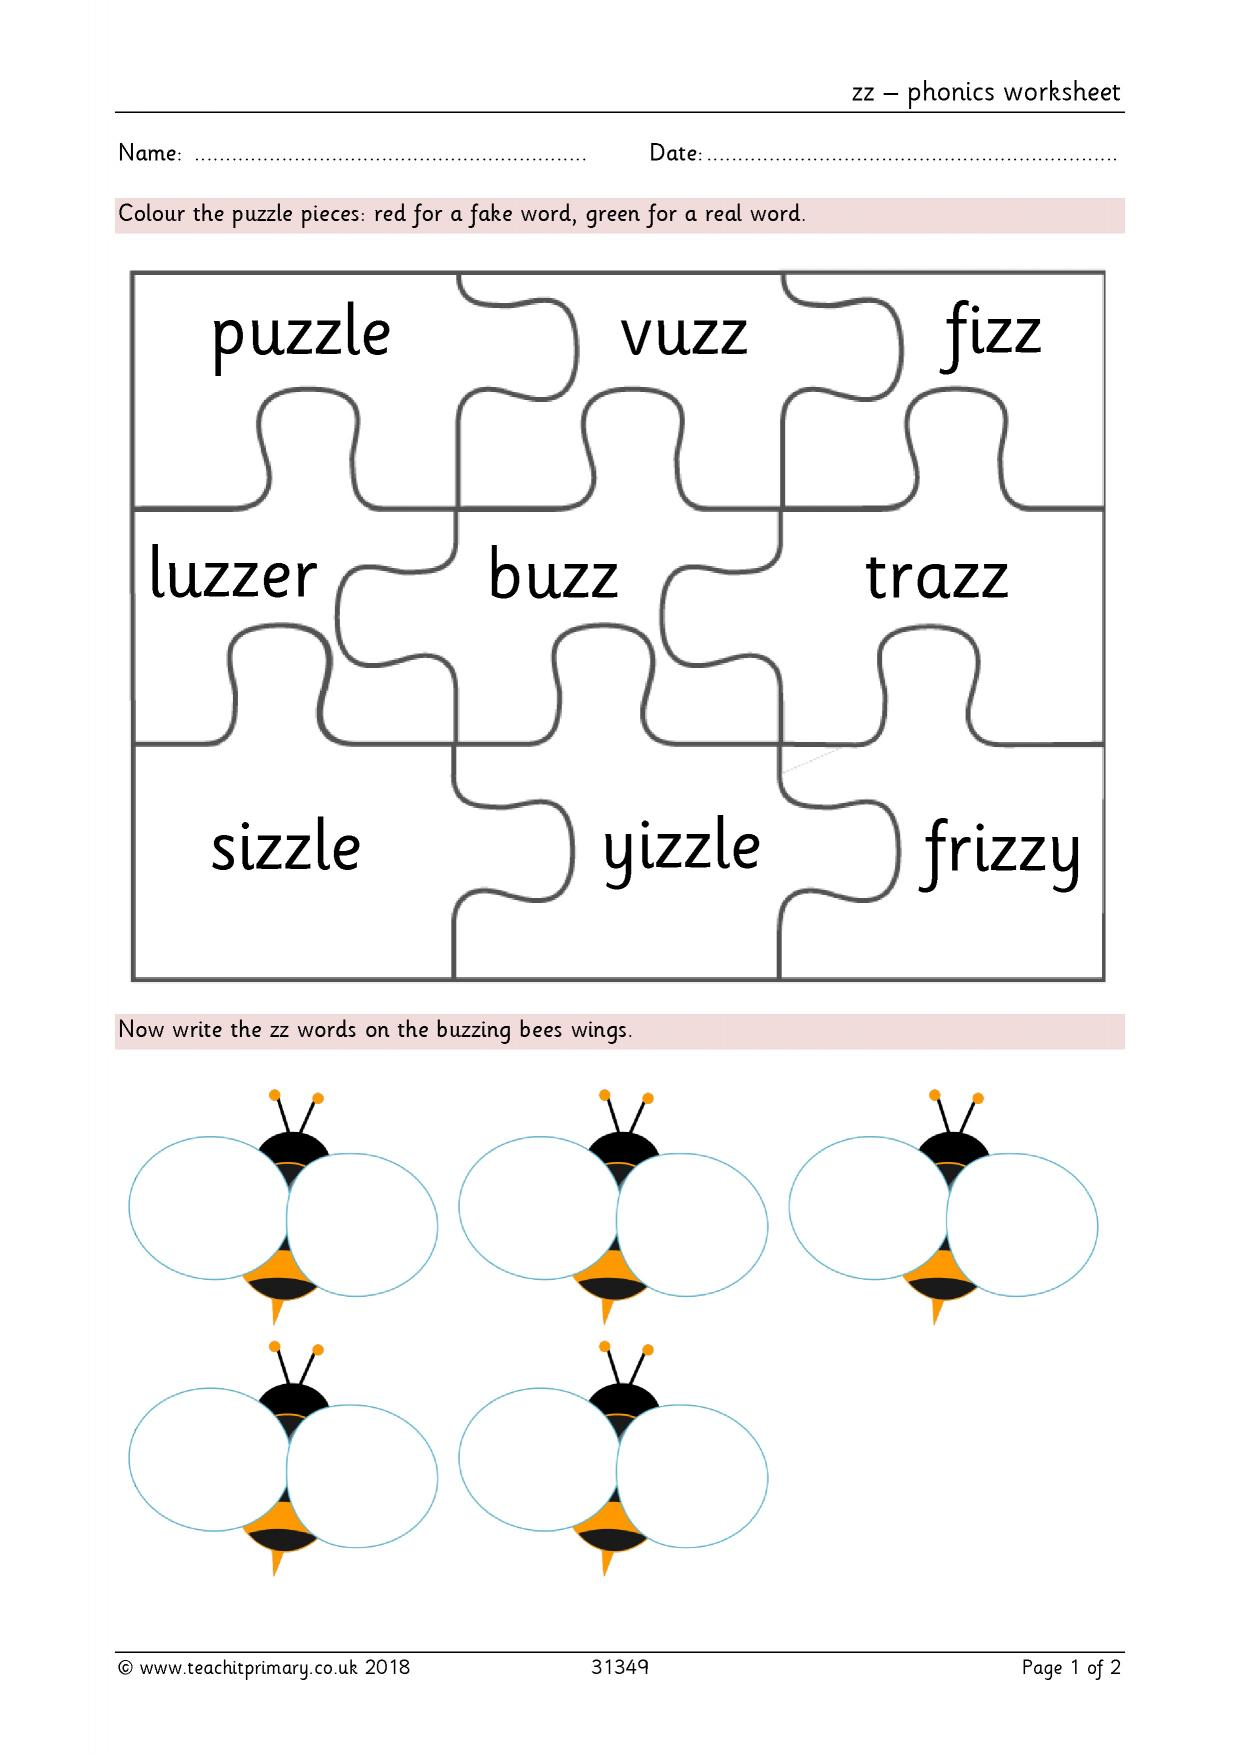 worksheet Zz Phonics Worksheets zz phonics worksheet home page resource thumbnail